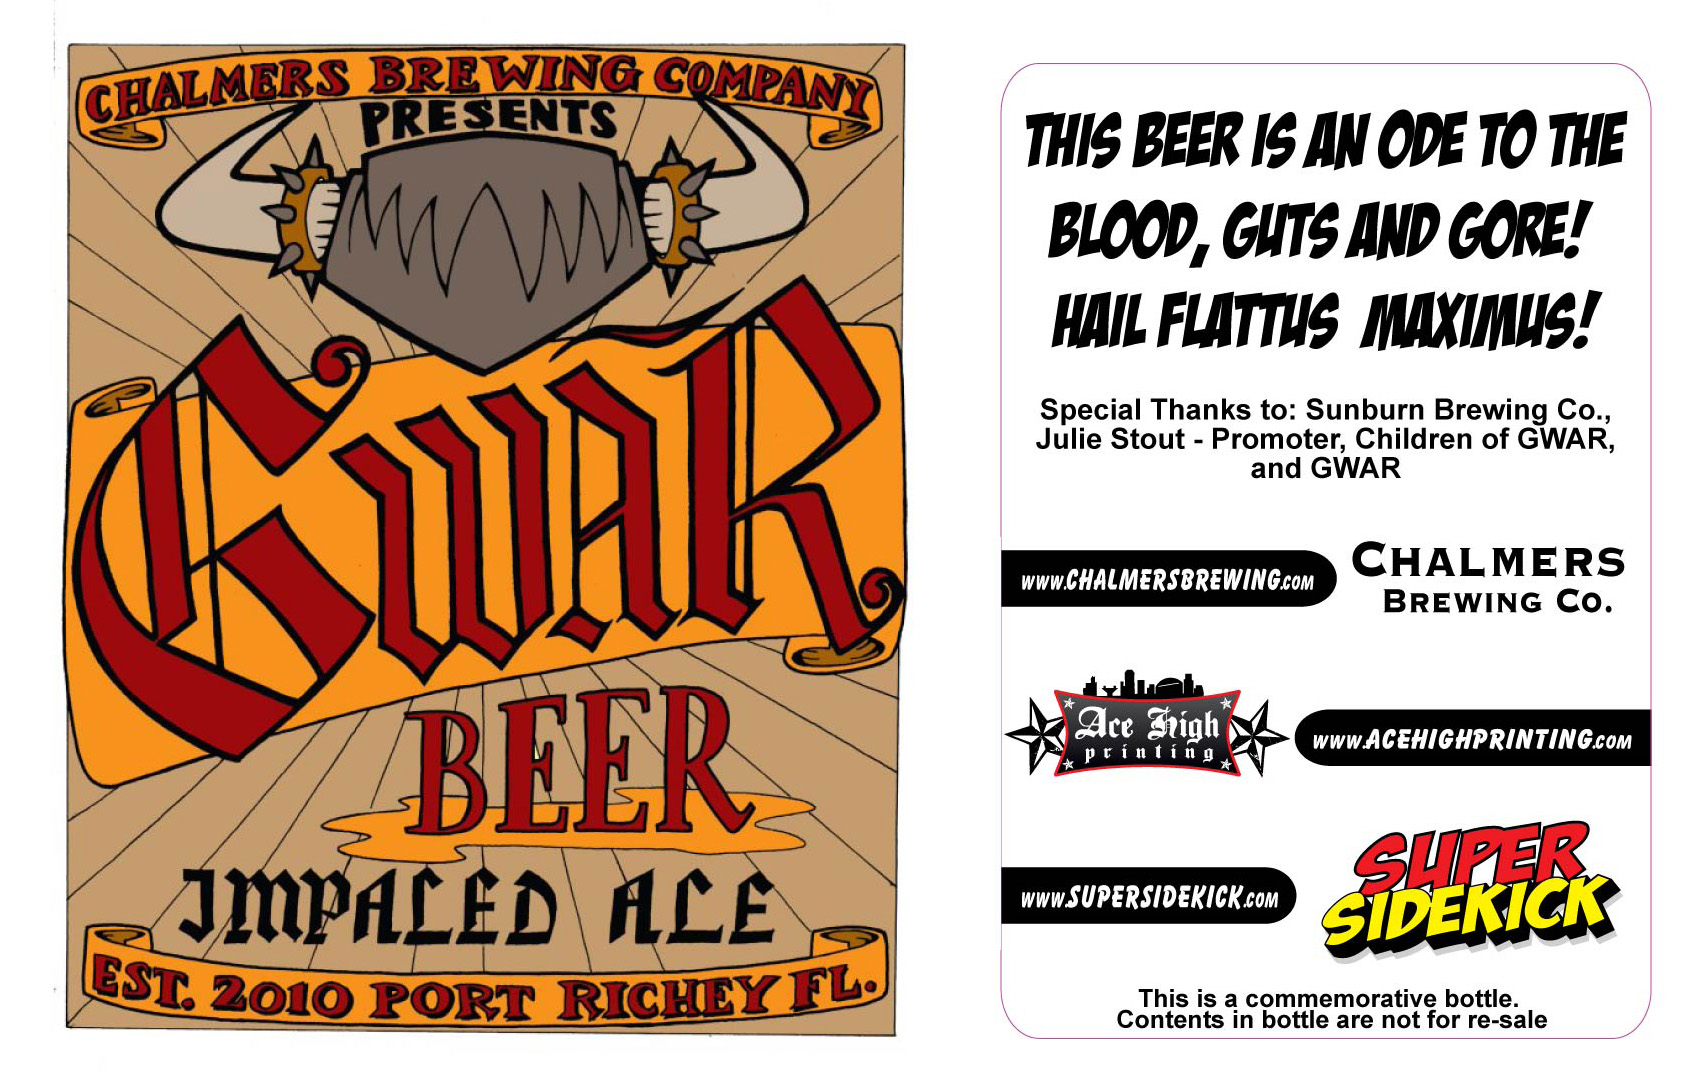 https://i2.wp.com/americancraftbeer.com/images/stories/article_images/2013/05/gwar-05-09-13/Impaled_Ale_label.jpg